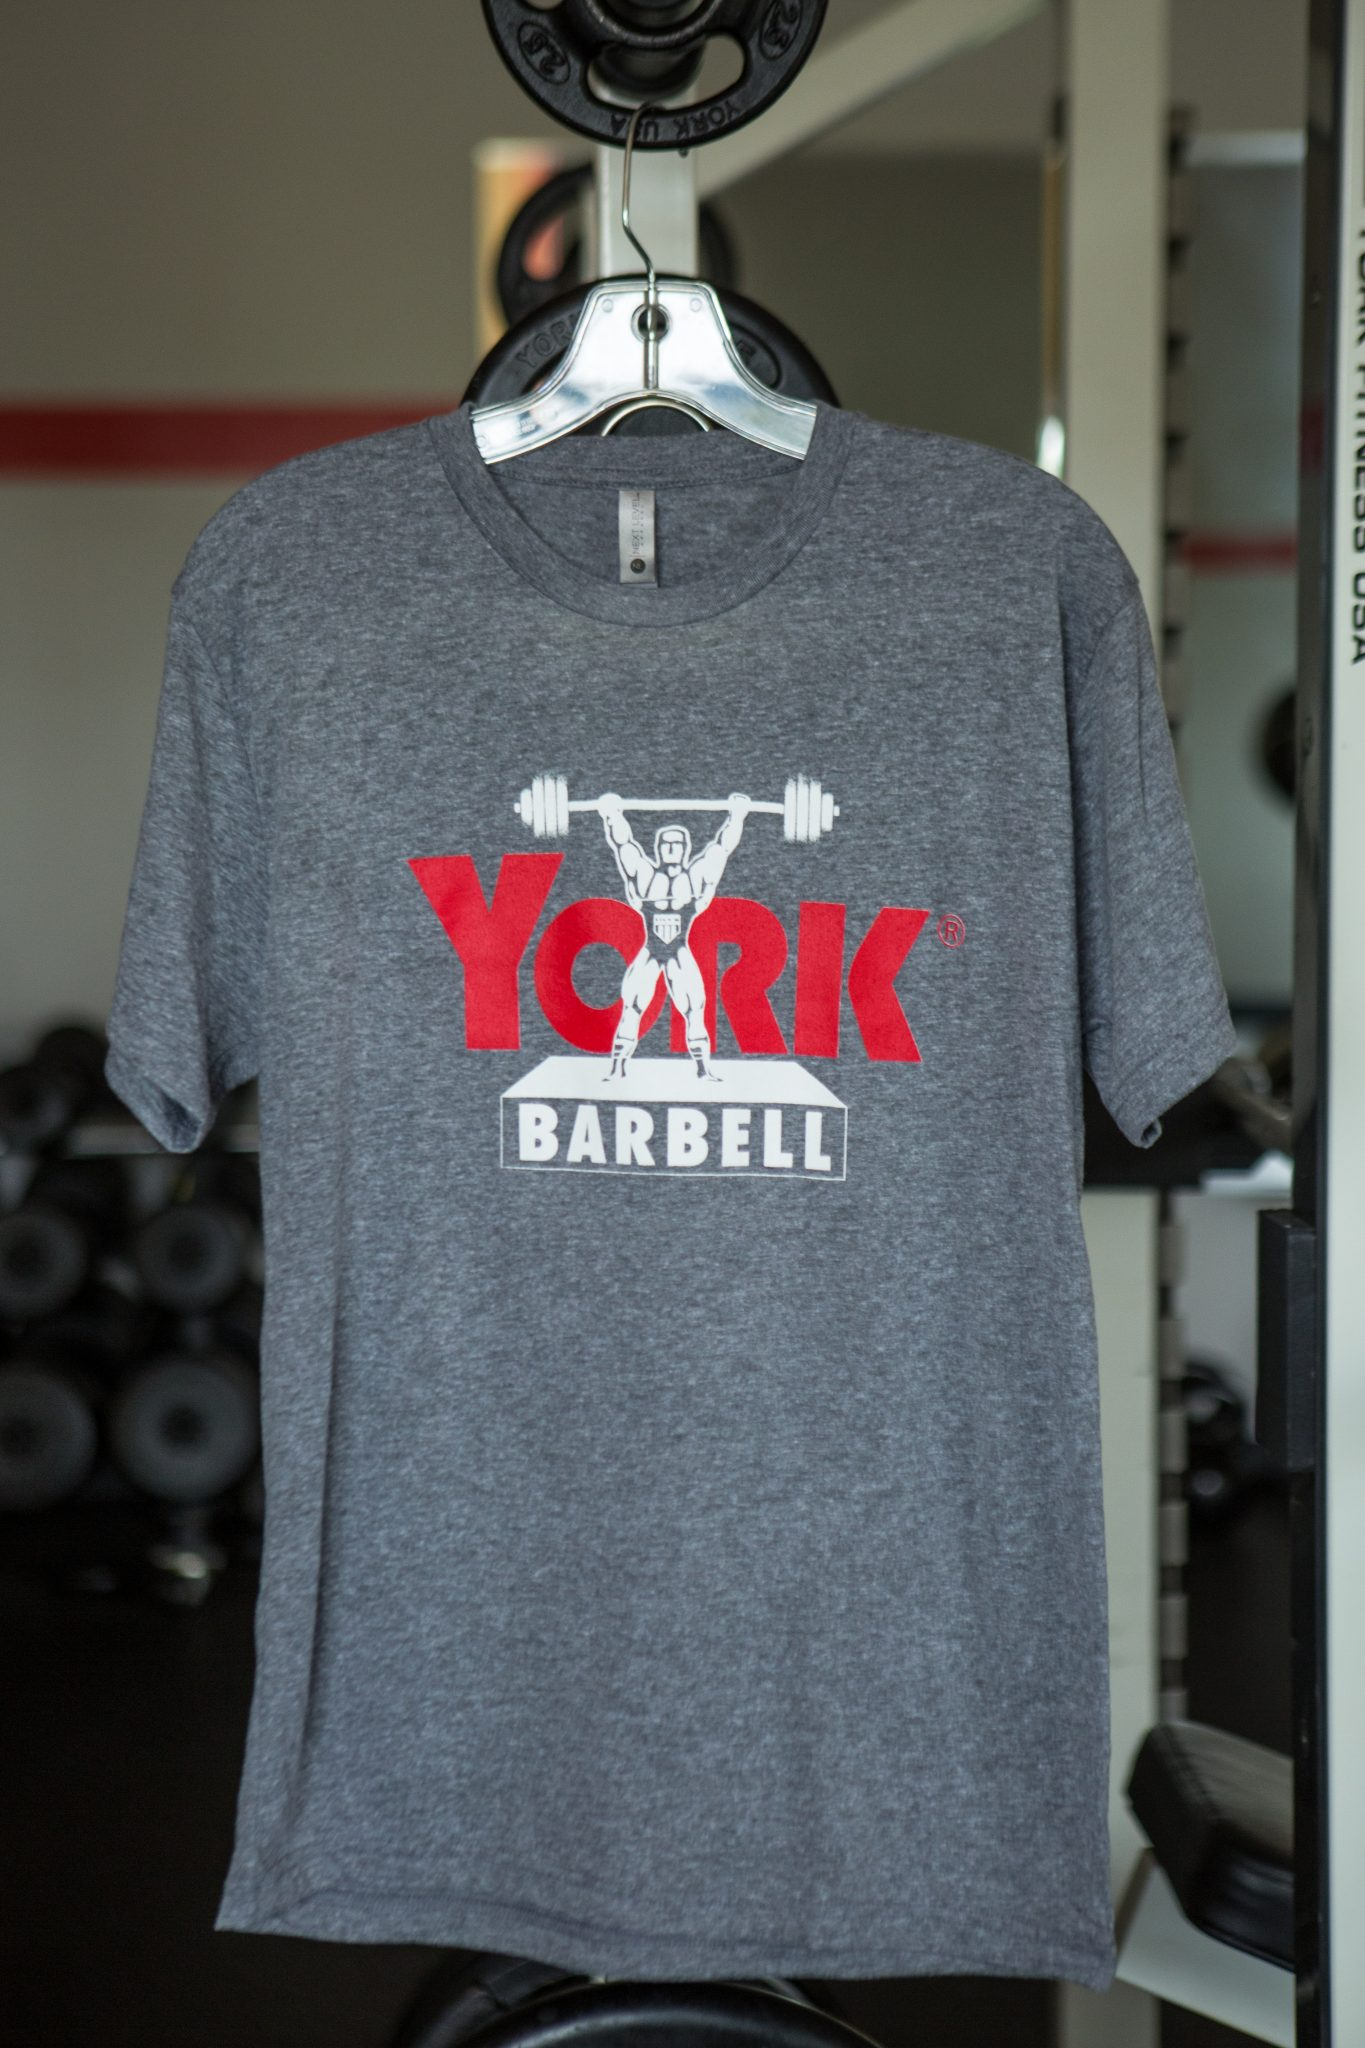 YORK Barbell Platform Lifter Tee